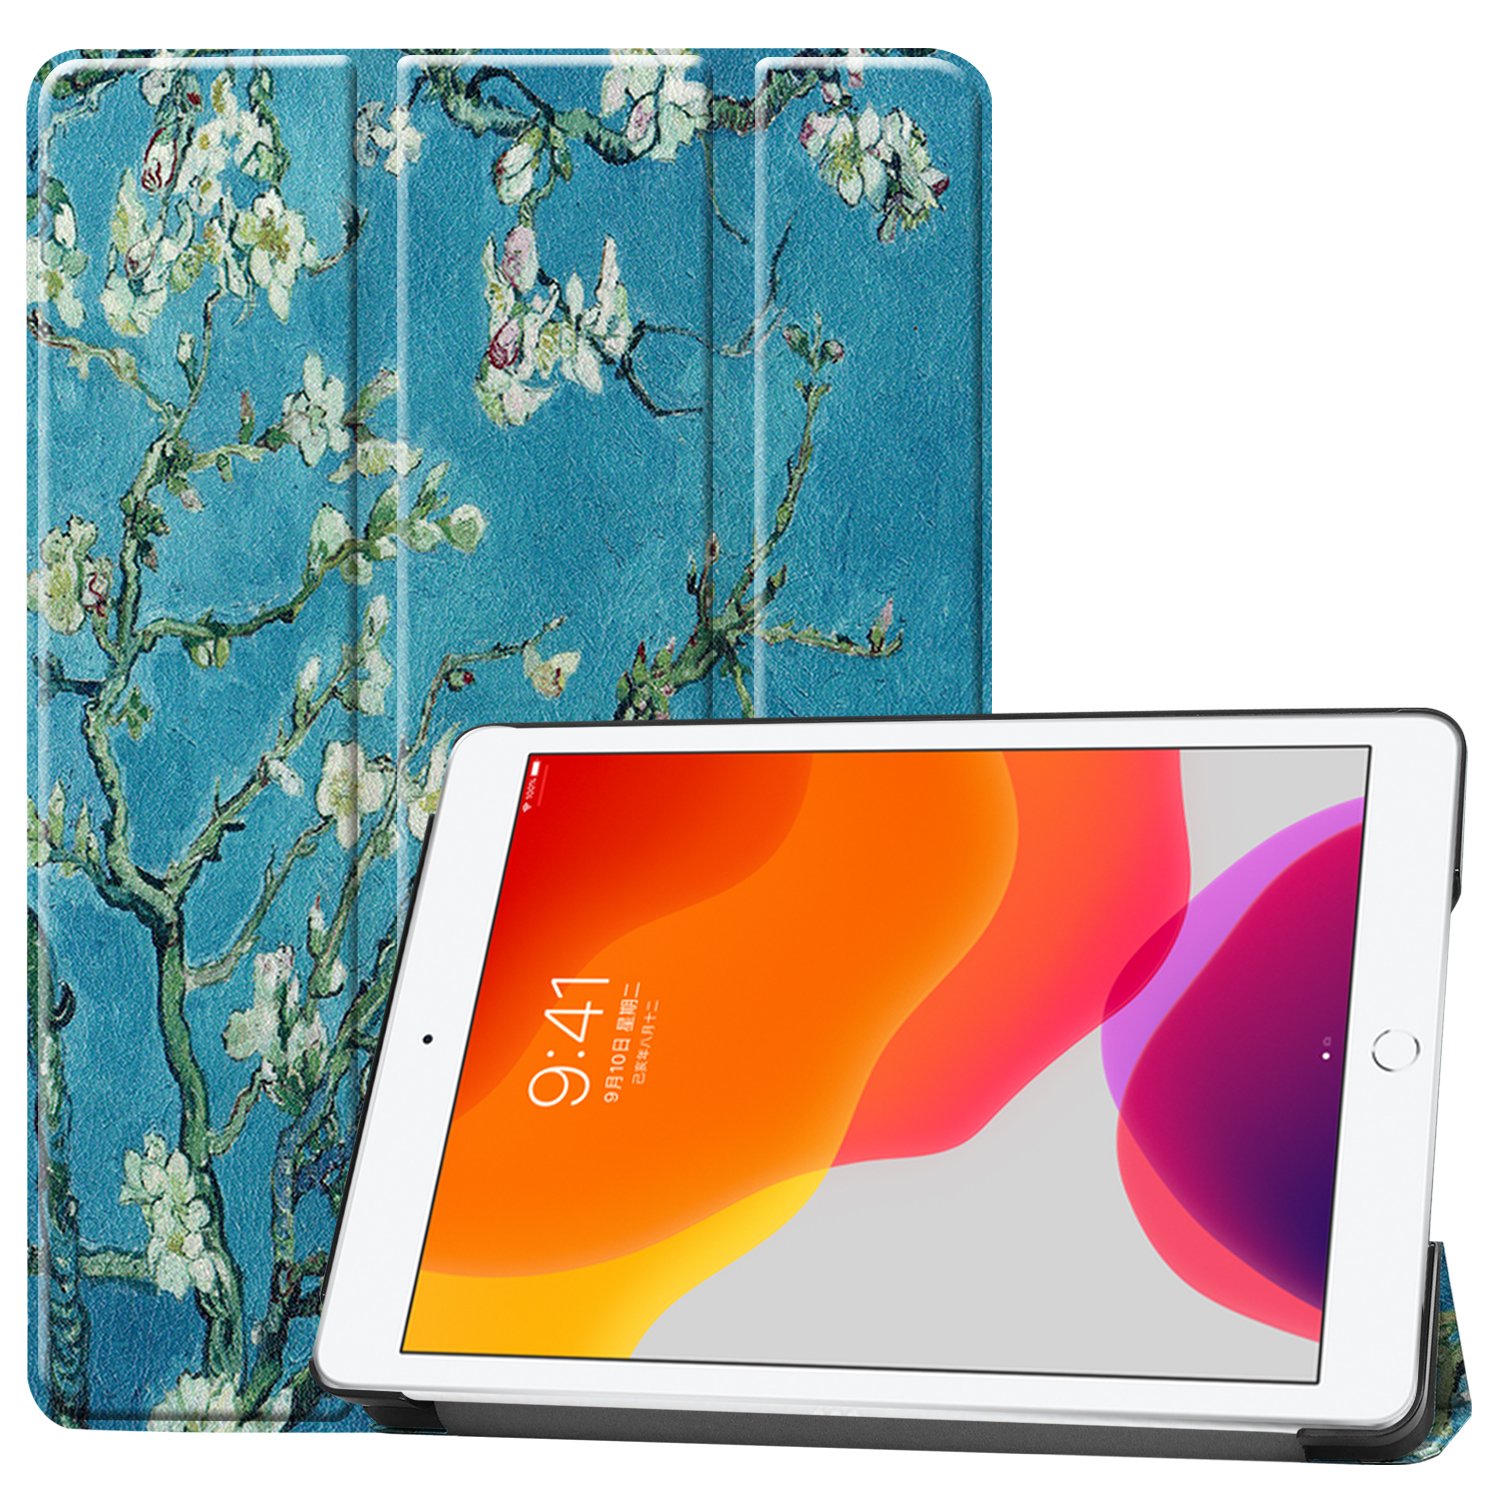 Blossom Gray Case For Apple iPad 10 2 2020 iPad 8 8th Generation A2270 A2428 A2429 Leather Magnetic